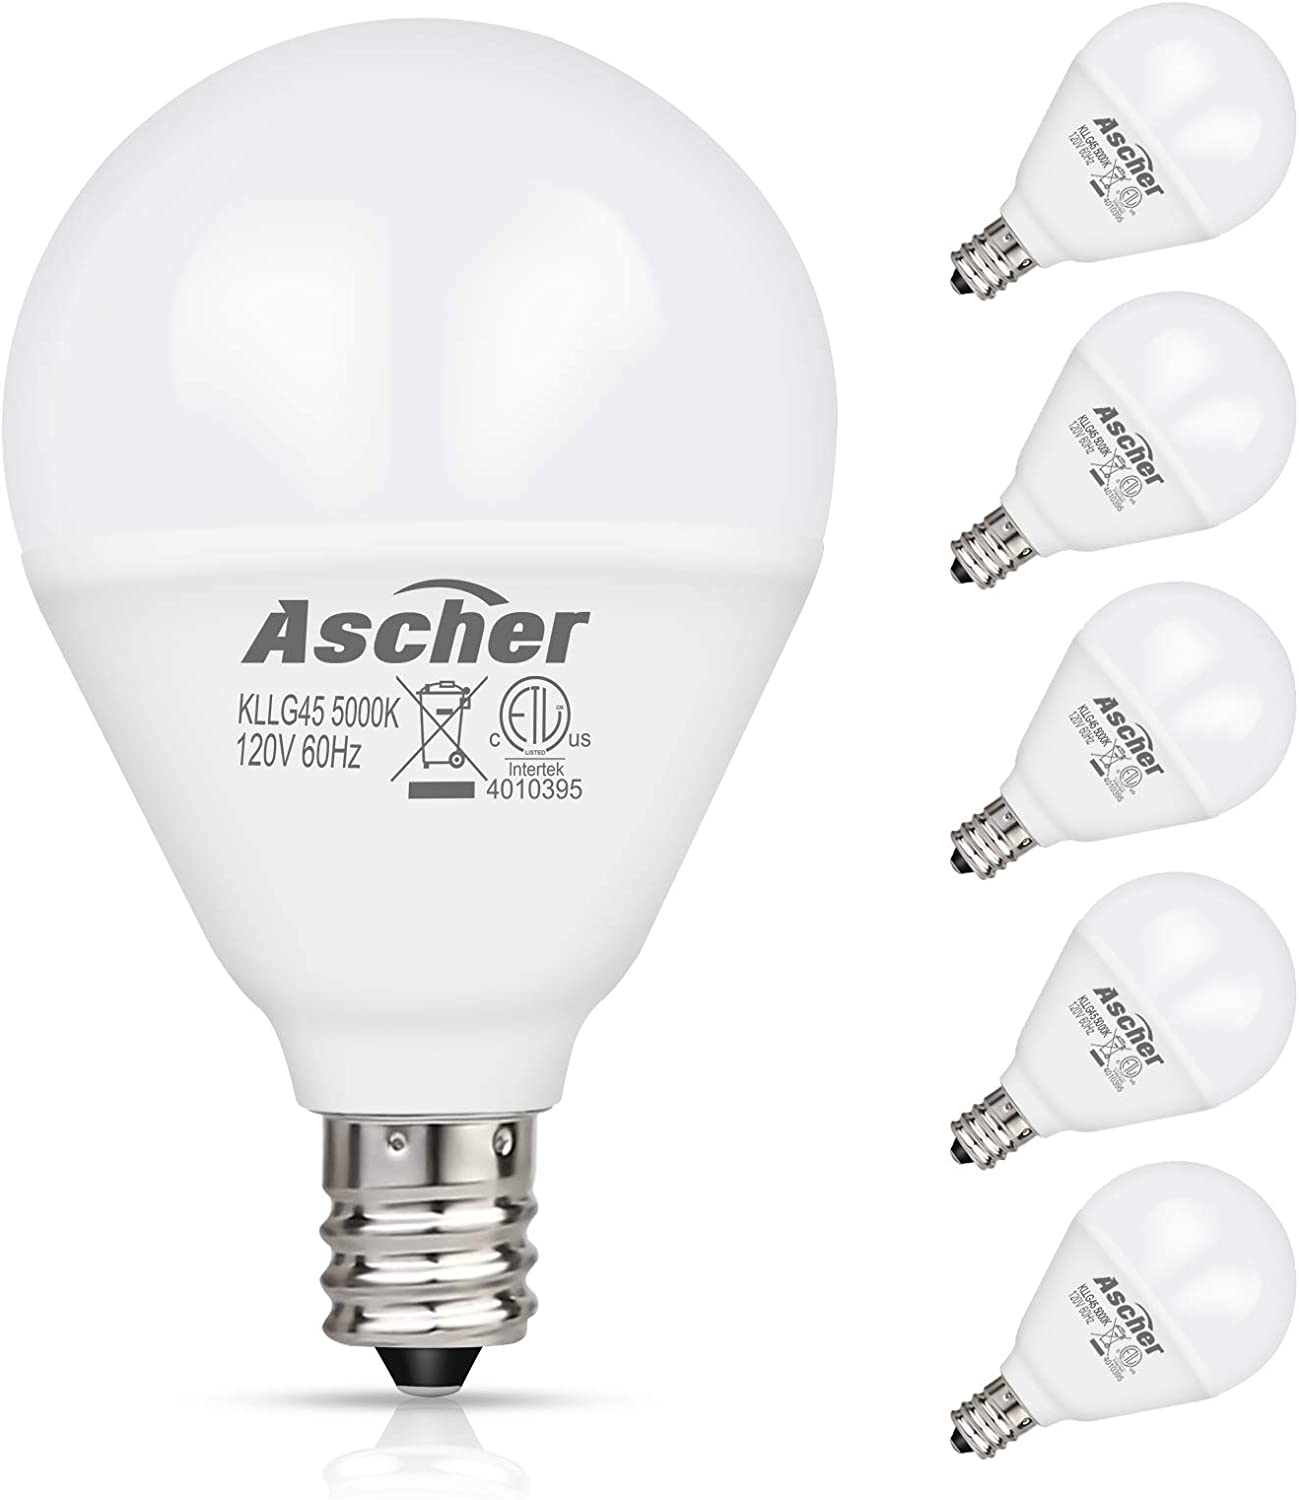 Ascher E12 LED Candelabra Light Bulbs 60 Watt Equivalent 550 Lumens Pack of 5 G14 Decorative Bulb for Ceiling Fan Daylight White 5000K Candelabra Base Round Bulb Non-dimmable